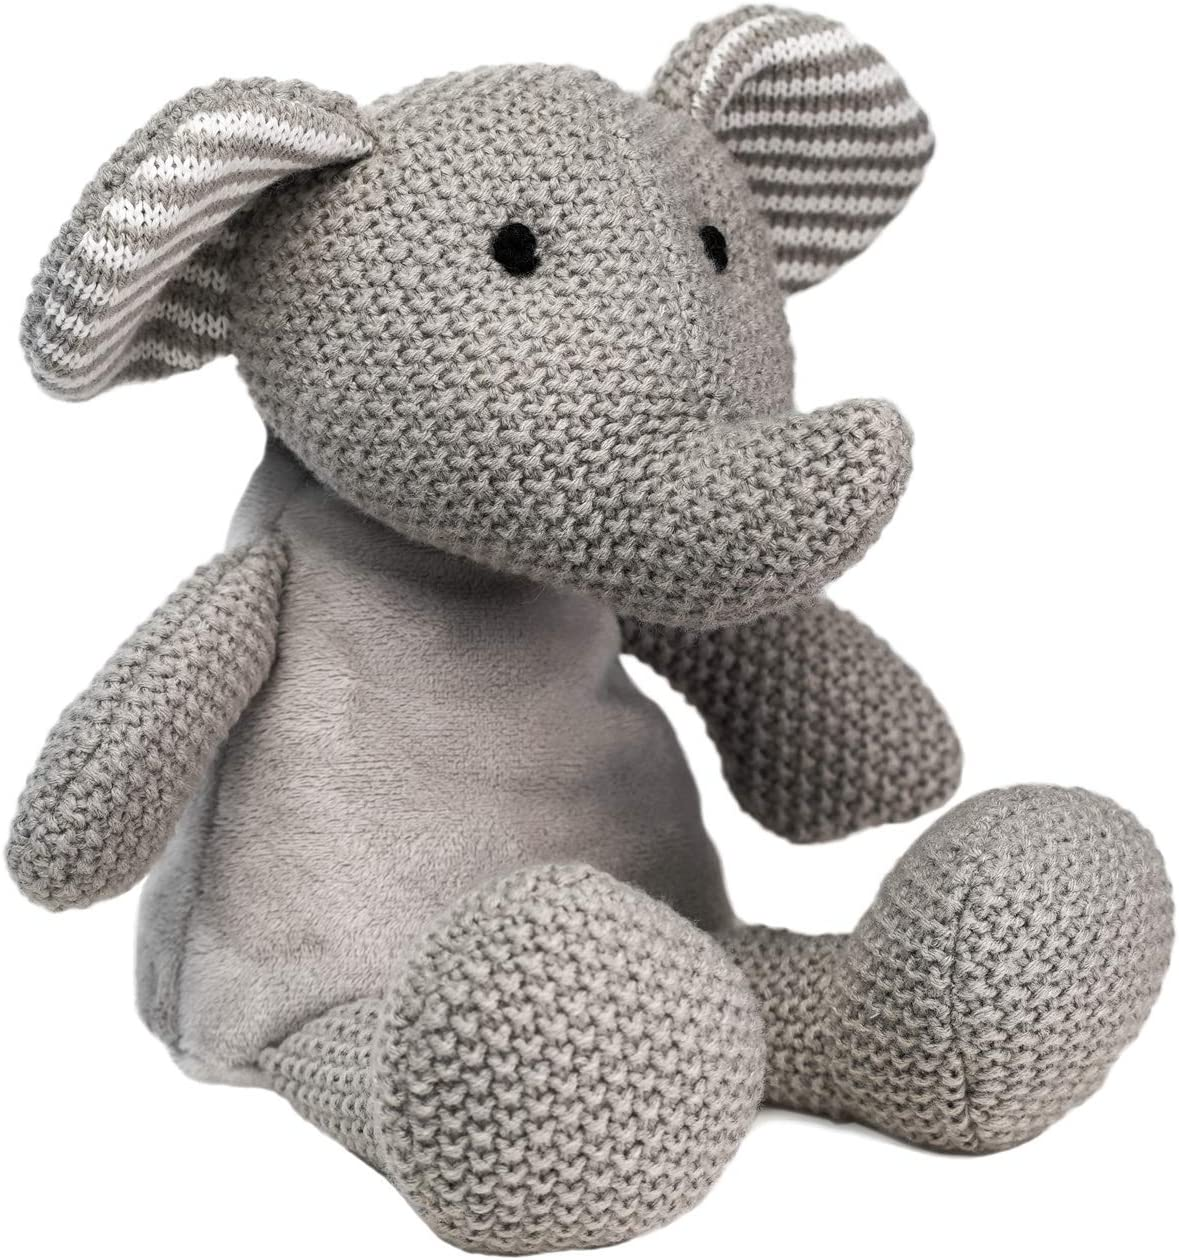 "WILD BABY Microwavable Plush Pal - Cozy Heatable Weighted Stuffed Animal with Aromatherapy Lavender Scent, 12"" Elephant"